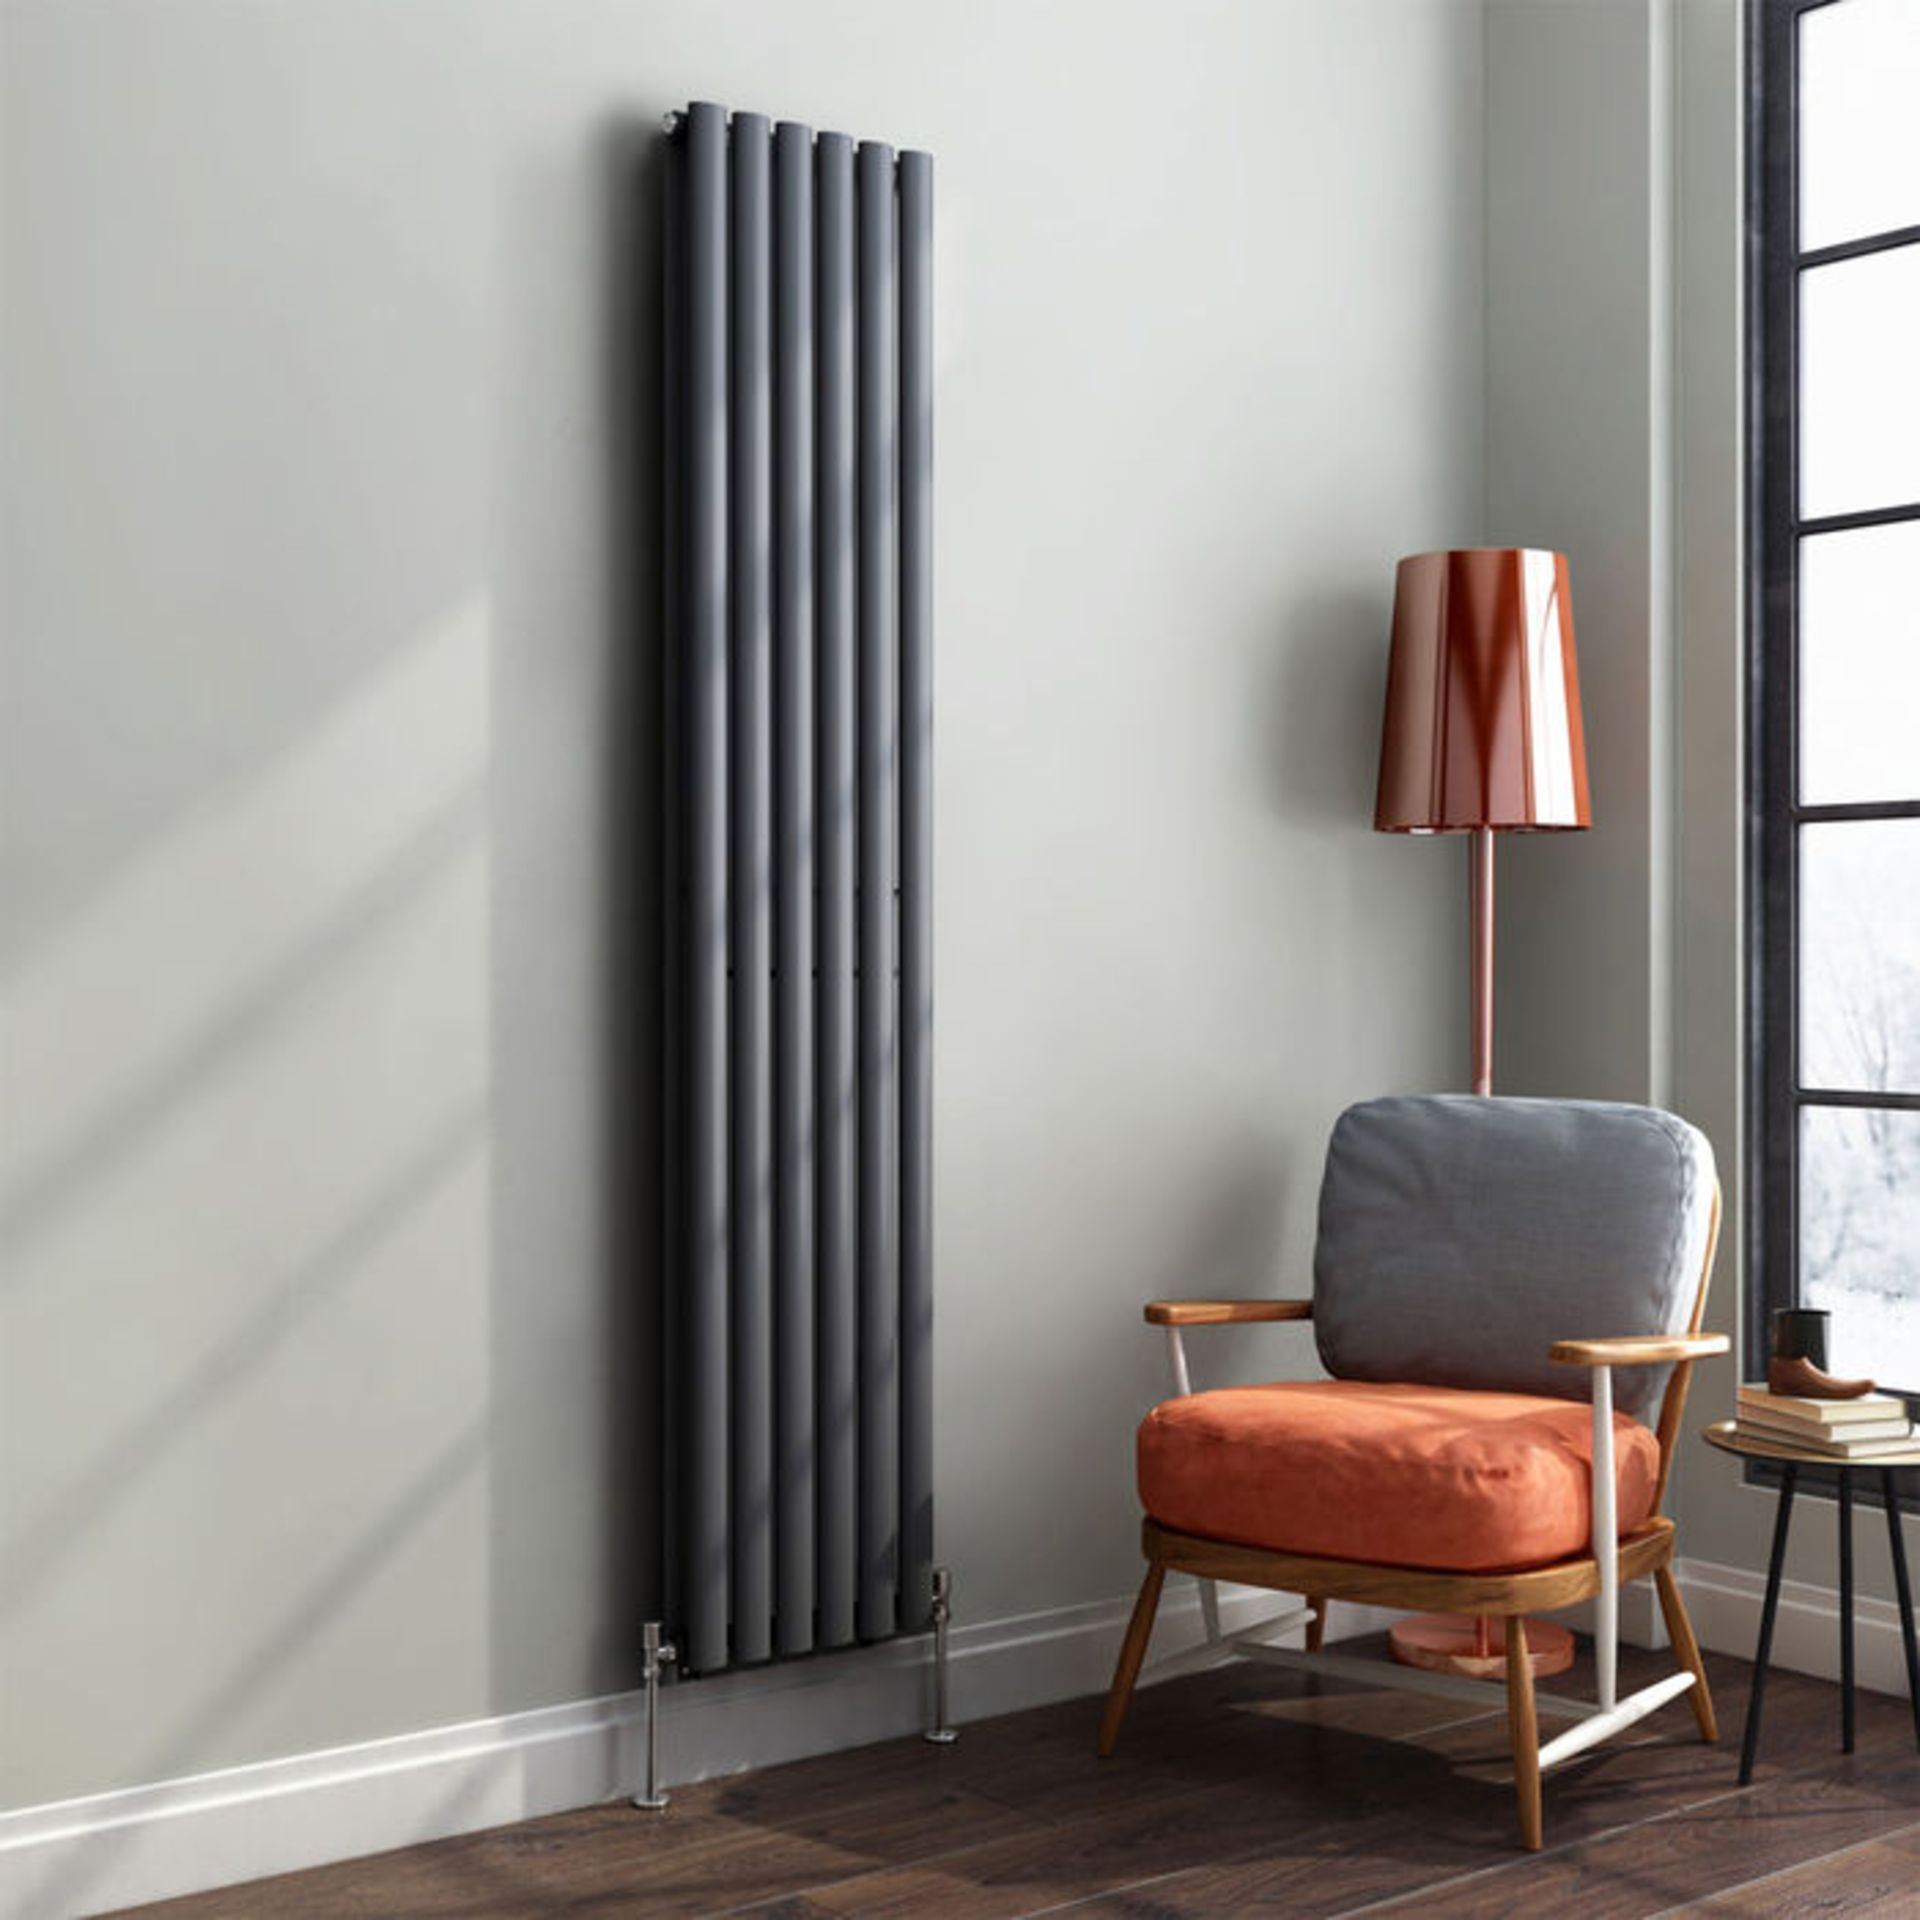 Lot 24 - 1800x360mm Anthracite Double Oval Tube Vertical Radiator. RRP £344.99. Made from high quality ...